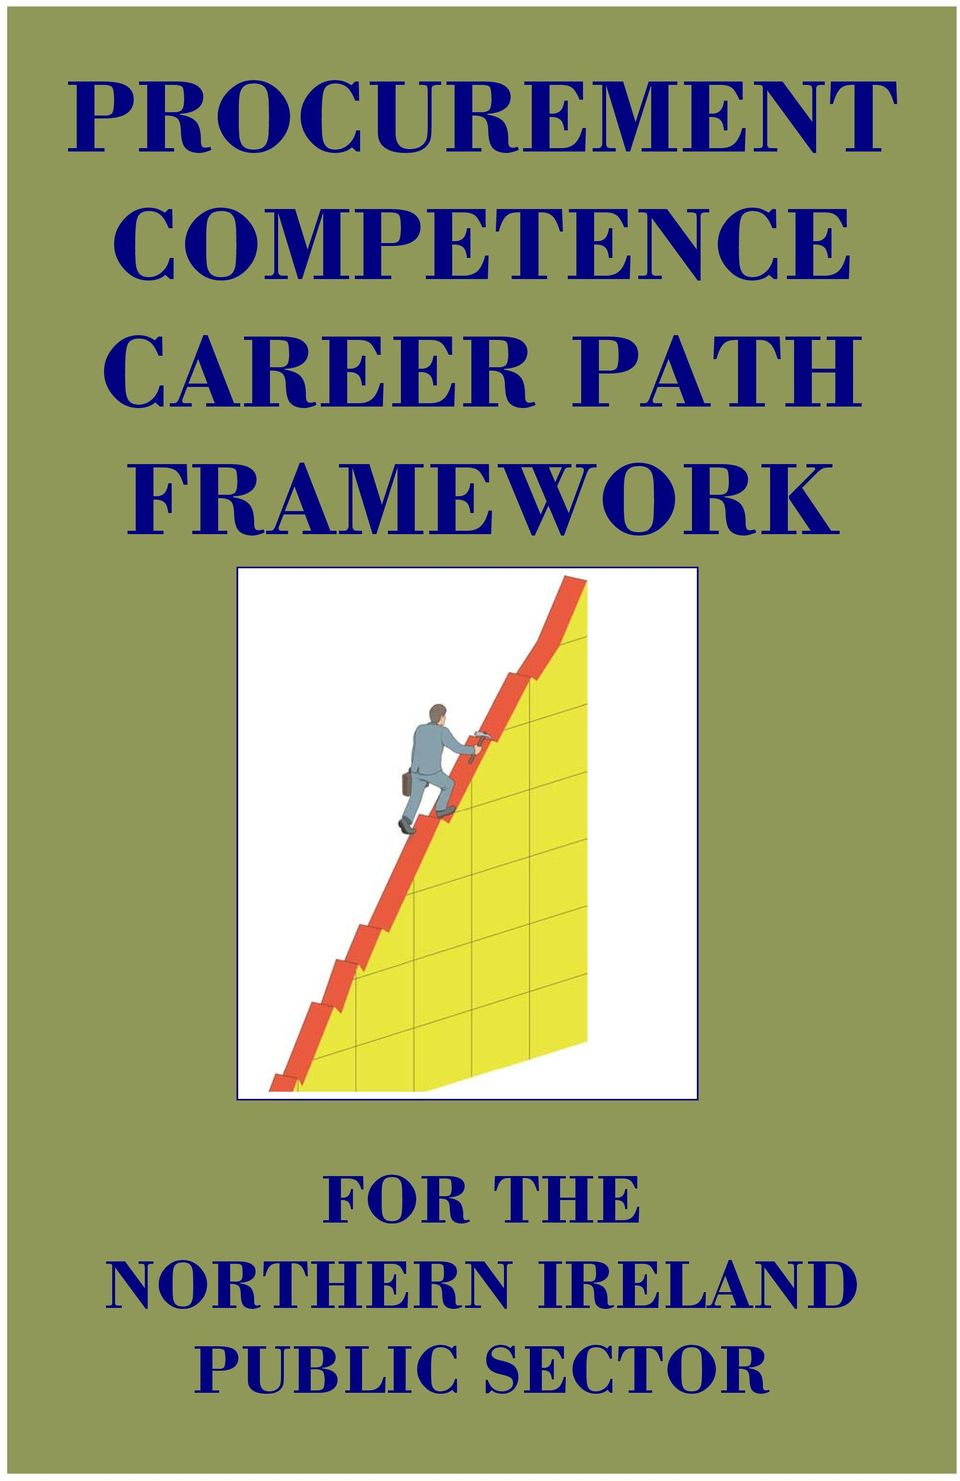 PATH FRAMEWORK FOR